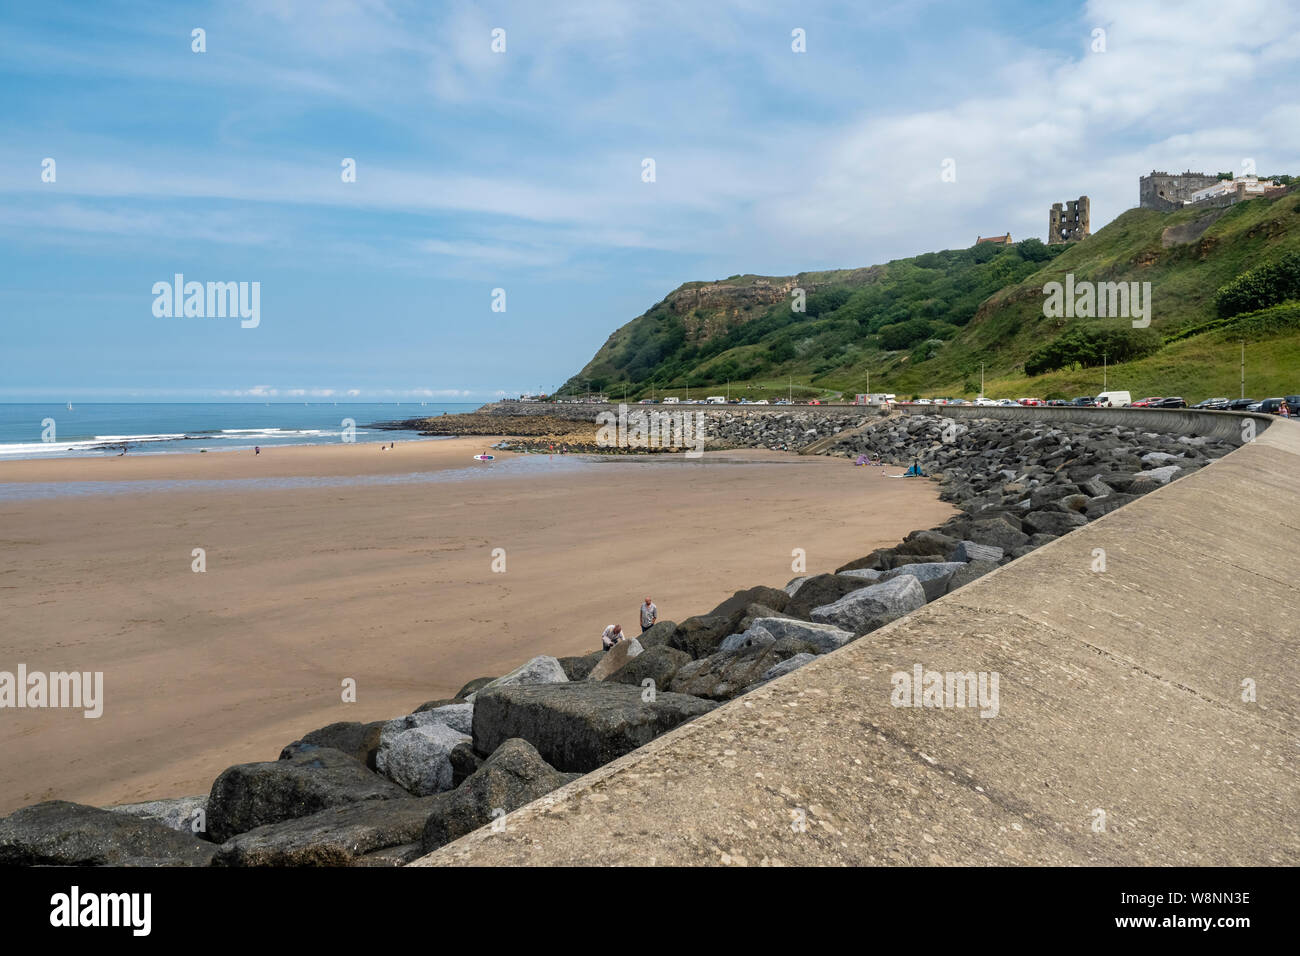 03/08/2019, Scarborough, North Yorkshire, Uk People at Scarborough beach enjoying a day at thbe seaside on a hot August summers day Stock Photo